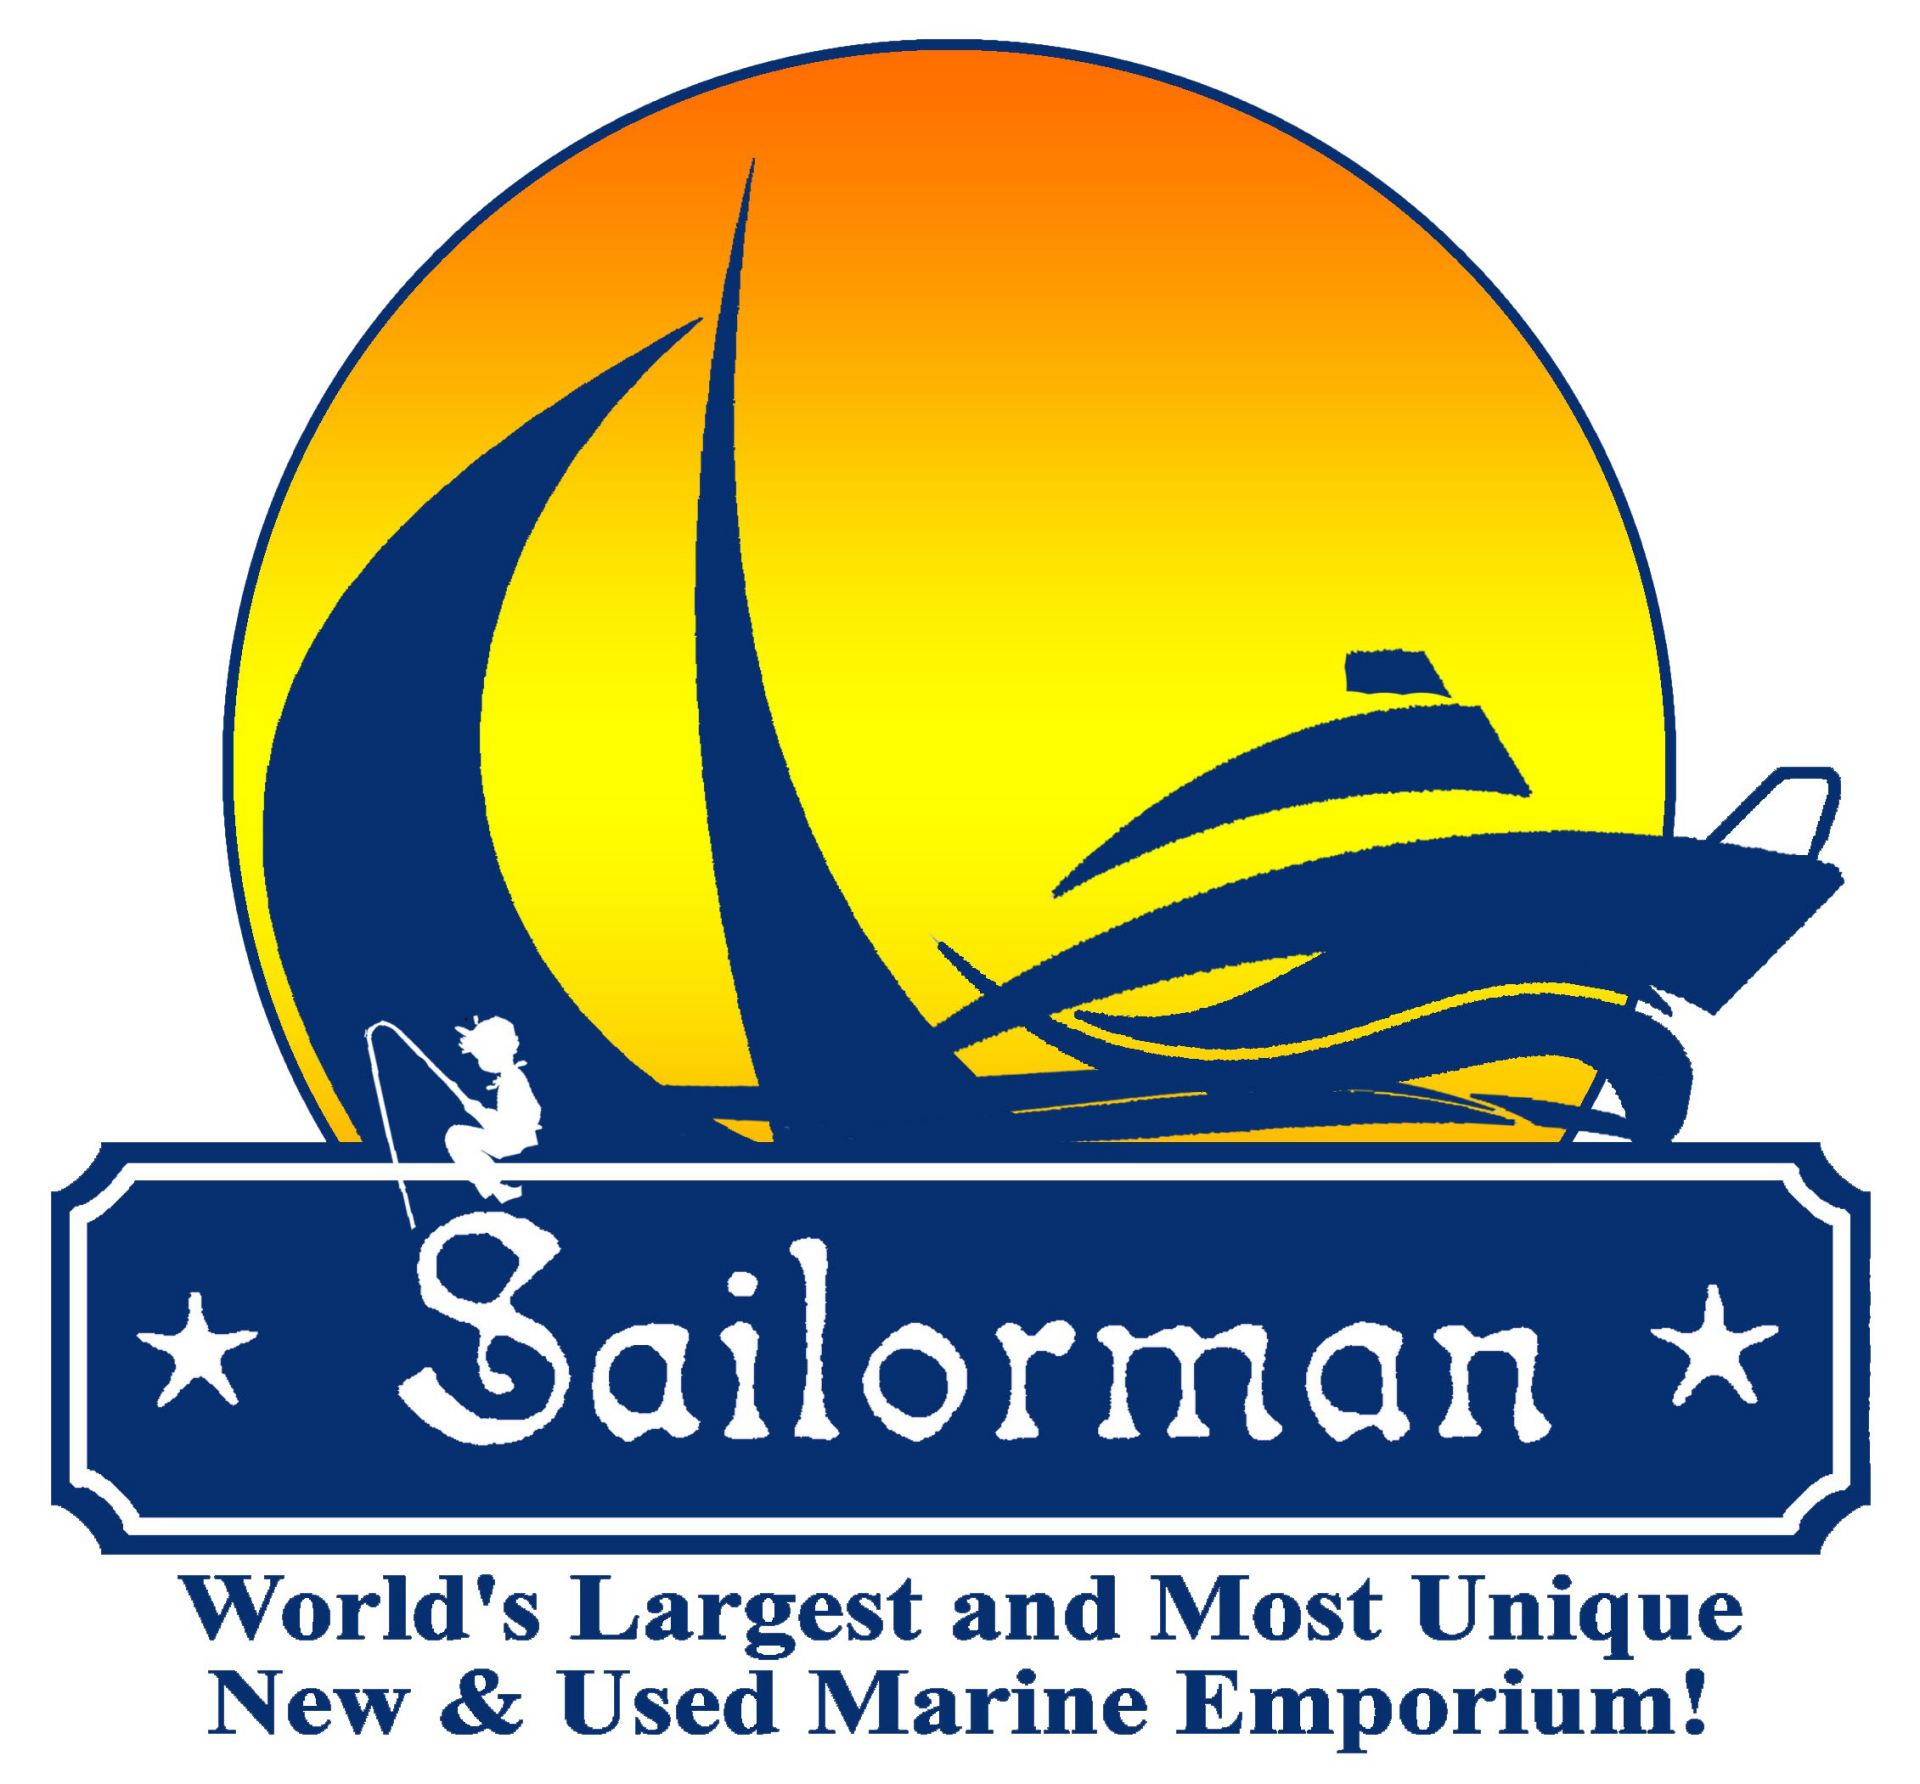 Upcoming Event - Sailorman Chili Cook-Off Sale and Auction